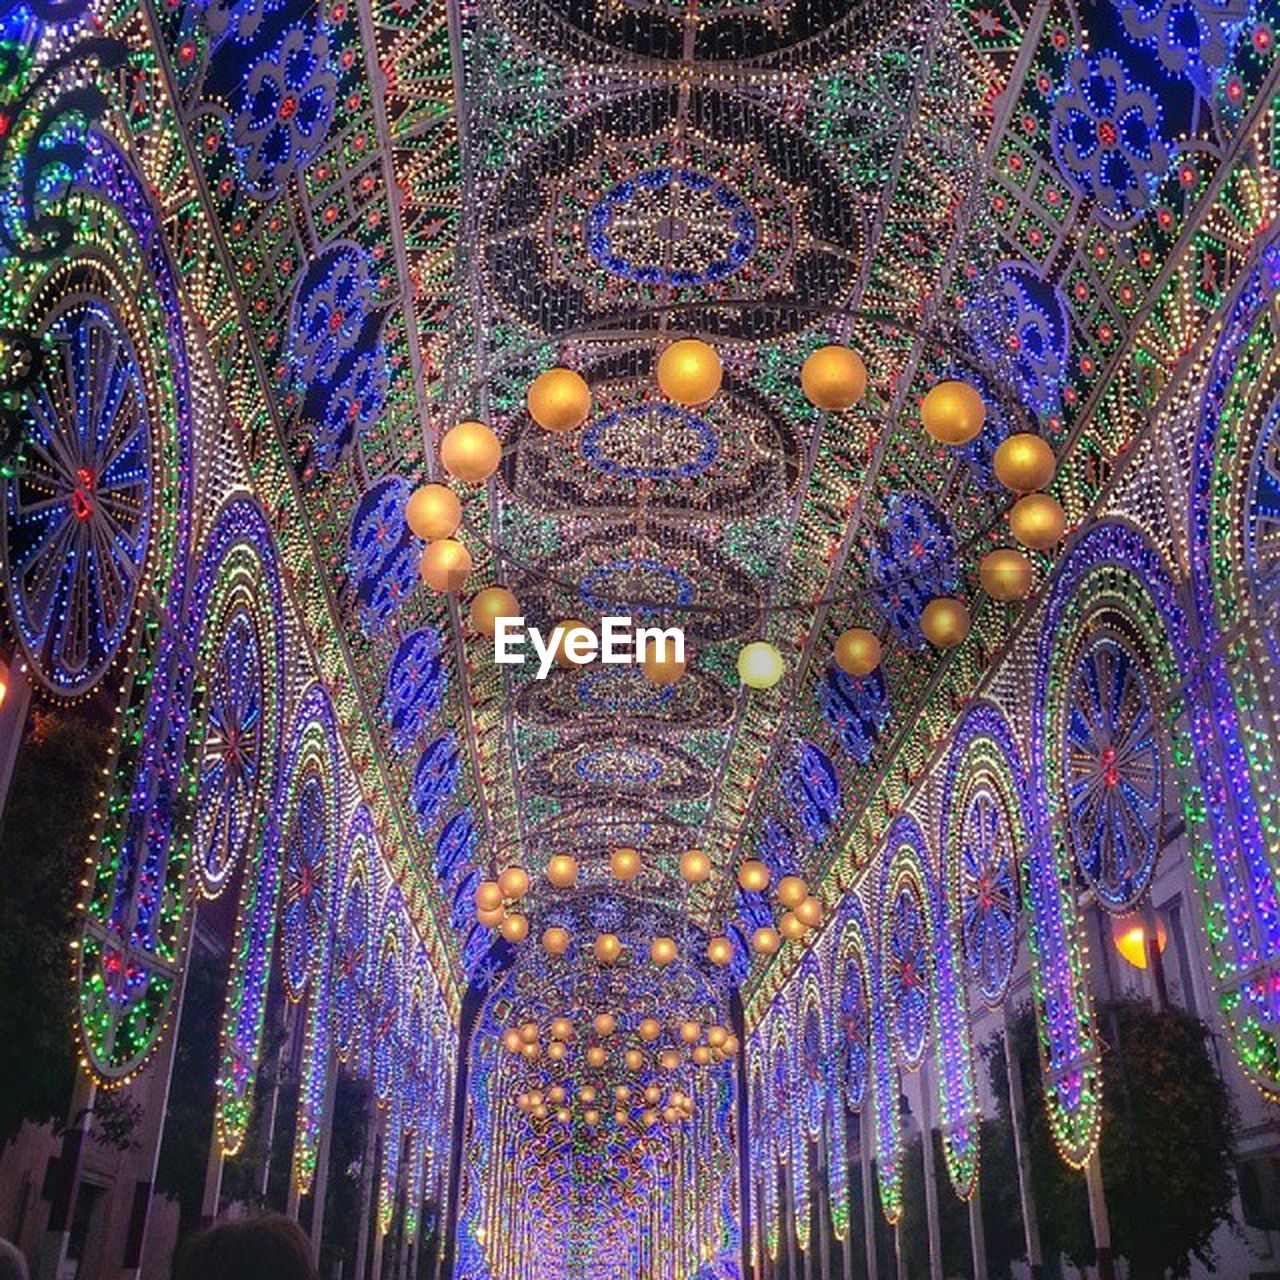 decoration, illuminated, pattern, lighting equipment, multi colored, no people, indoors, low angle view, built structure, ceiling, architecture, art and craft, design, ornate, creativity, celebration, hanging, religion, building, purple, luxury, floral pattern